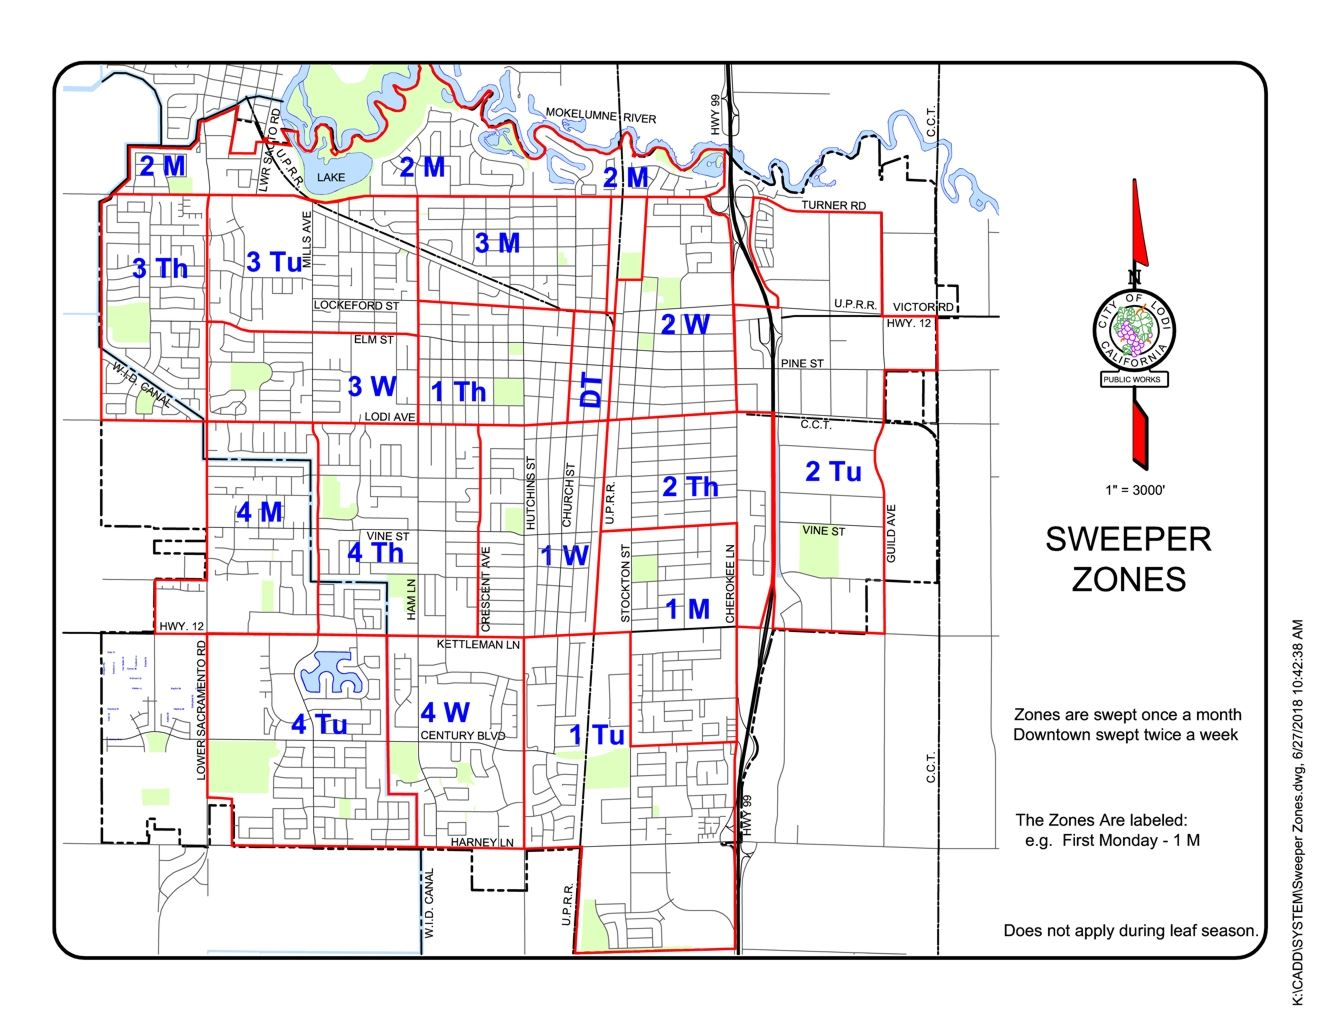 Sweeper Schedule Zones